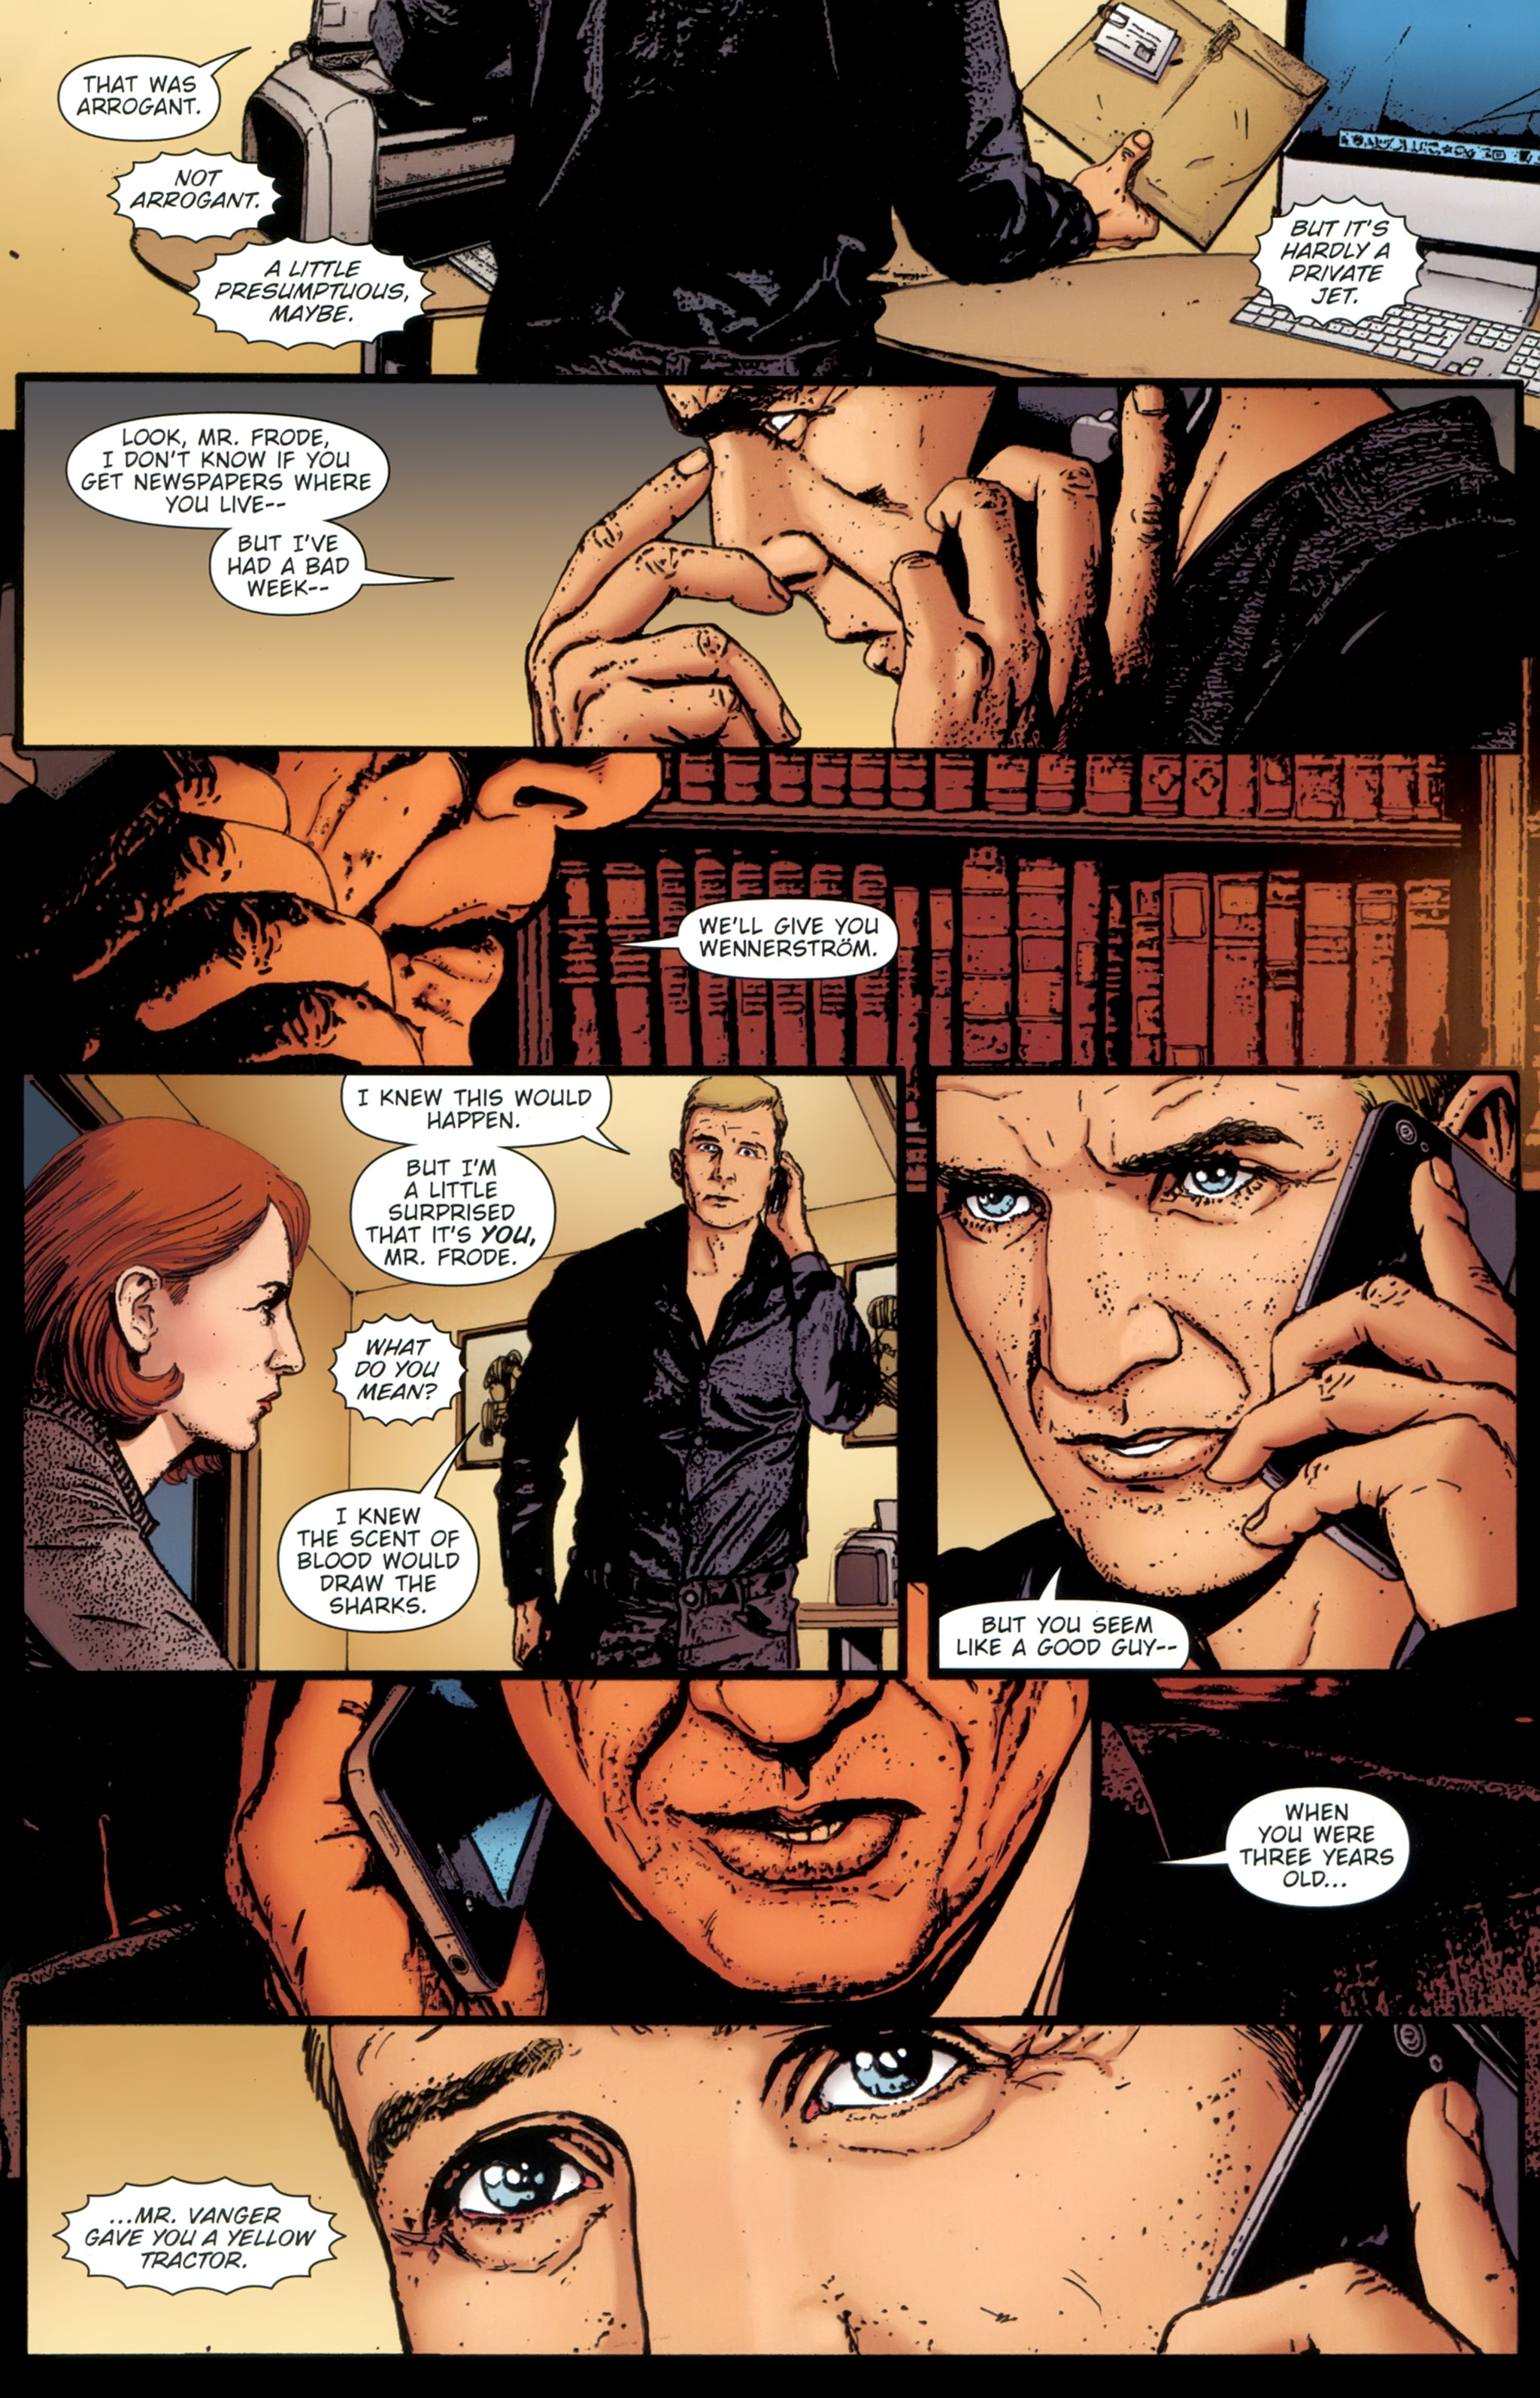 Read online The Girl With the Dragon Tattoo comic -  Issue # TPB 1 - 28